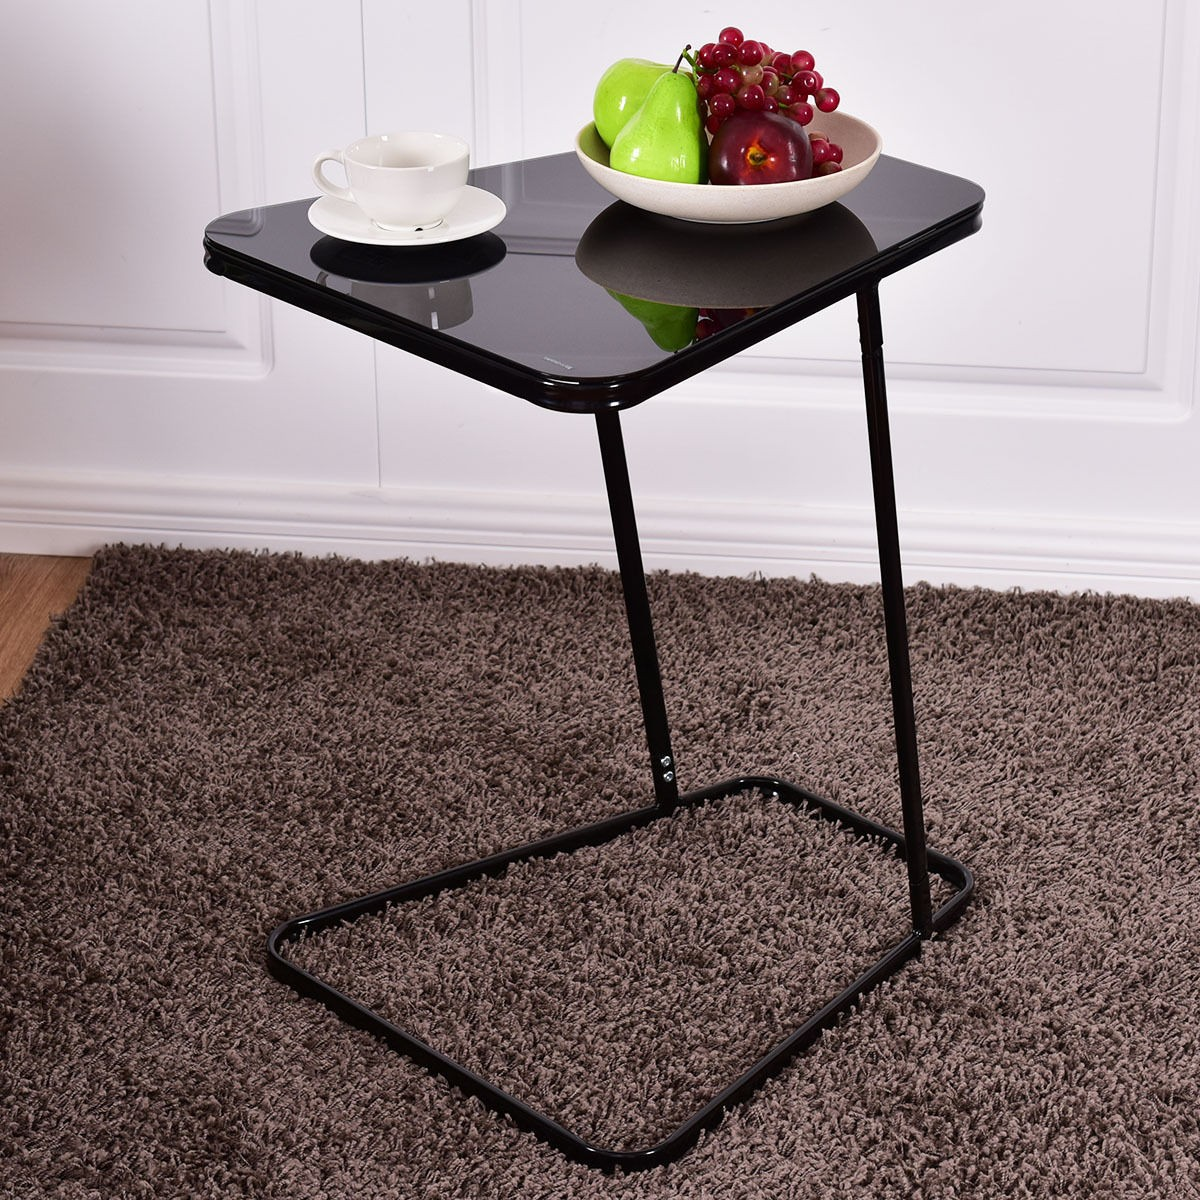 Details about home retro black creative c shape steel frame end glass table modern furniture